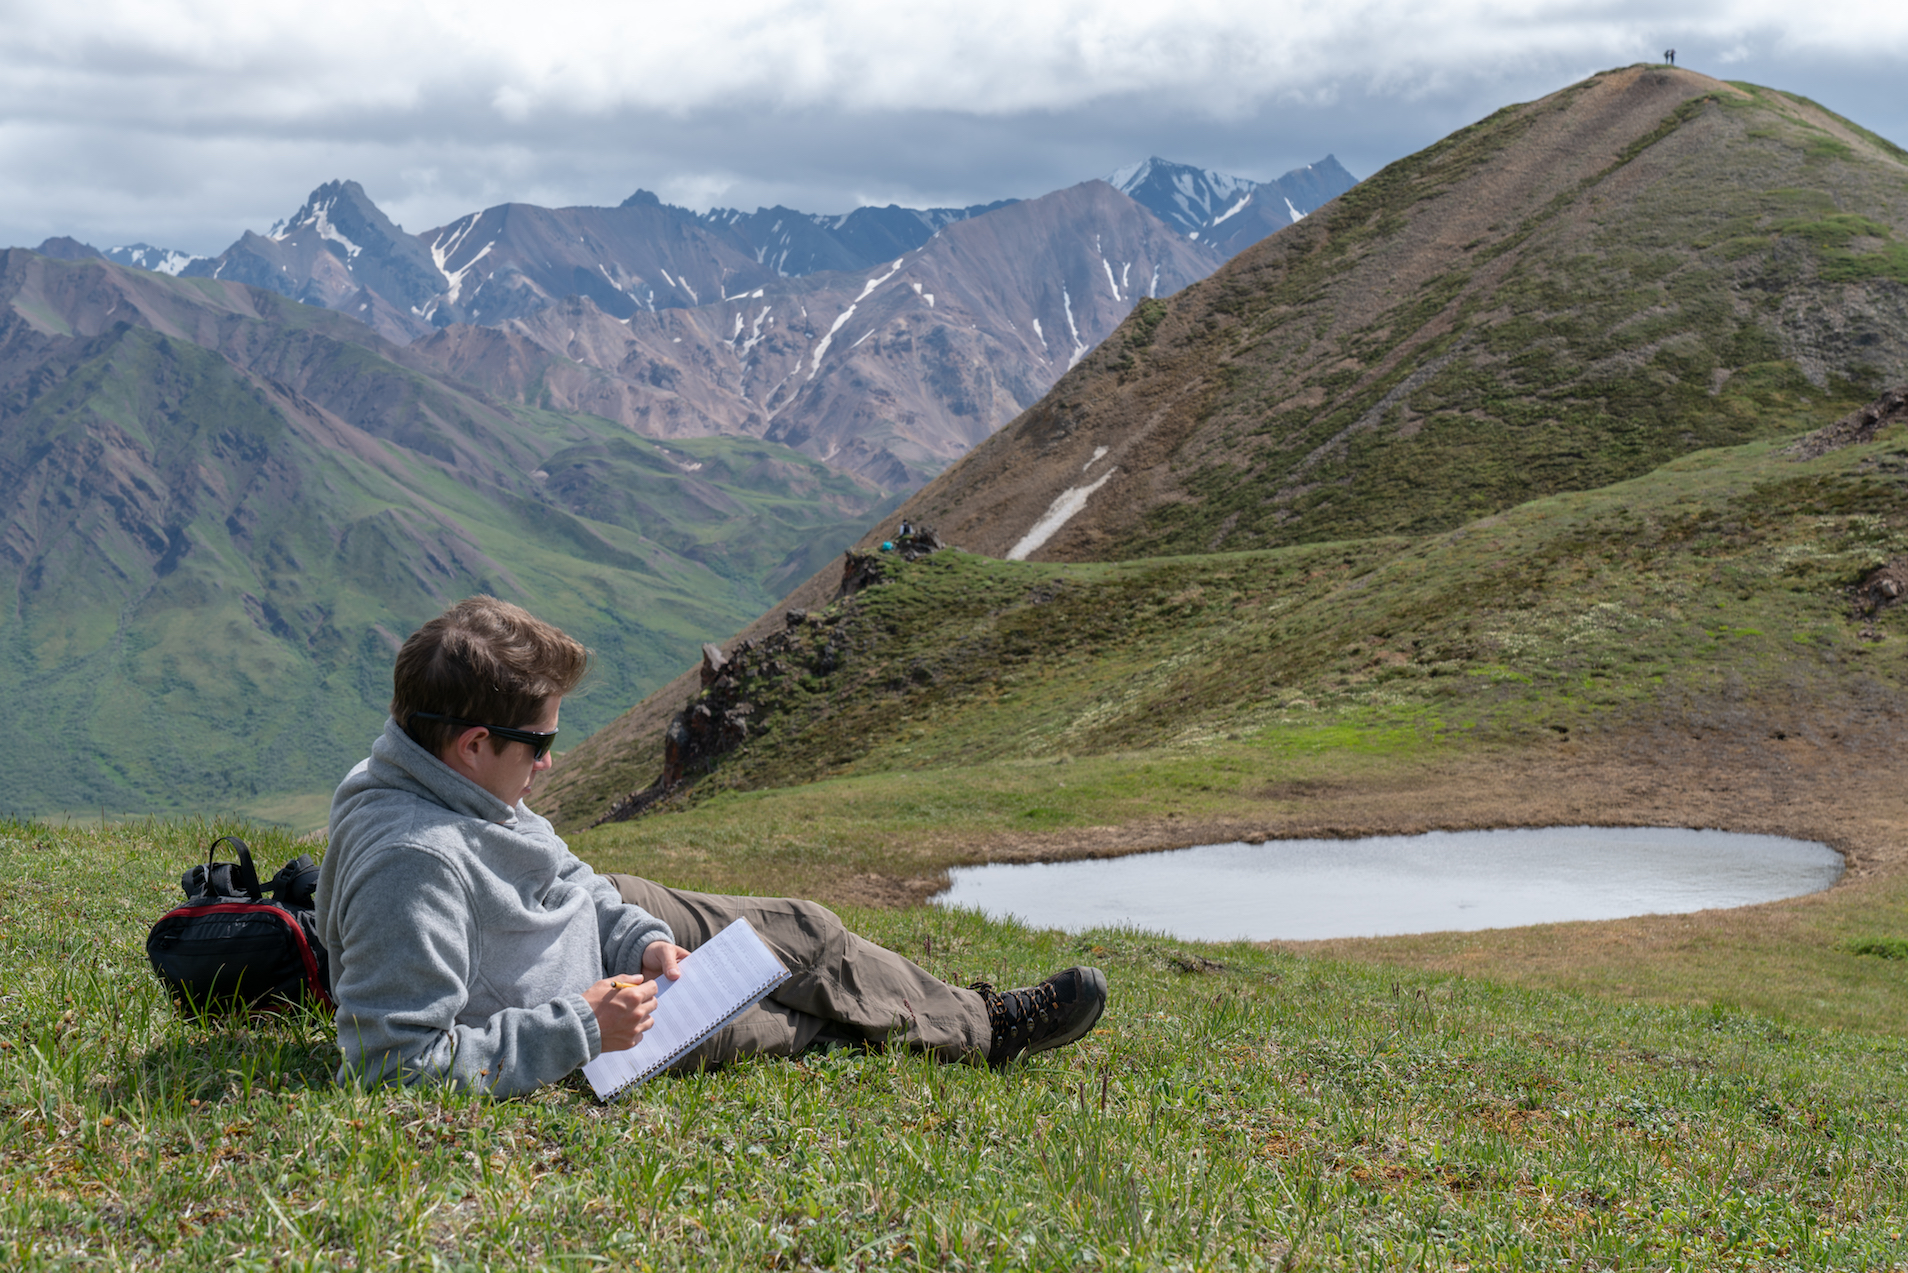 Composer Sasha Avanov drinks in the inspiration on the south side of Cathedral Mountain in Denali National Park (2018)